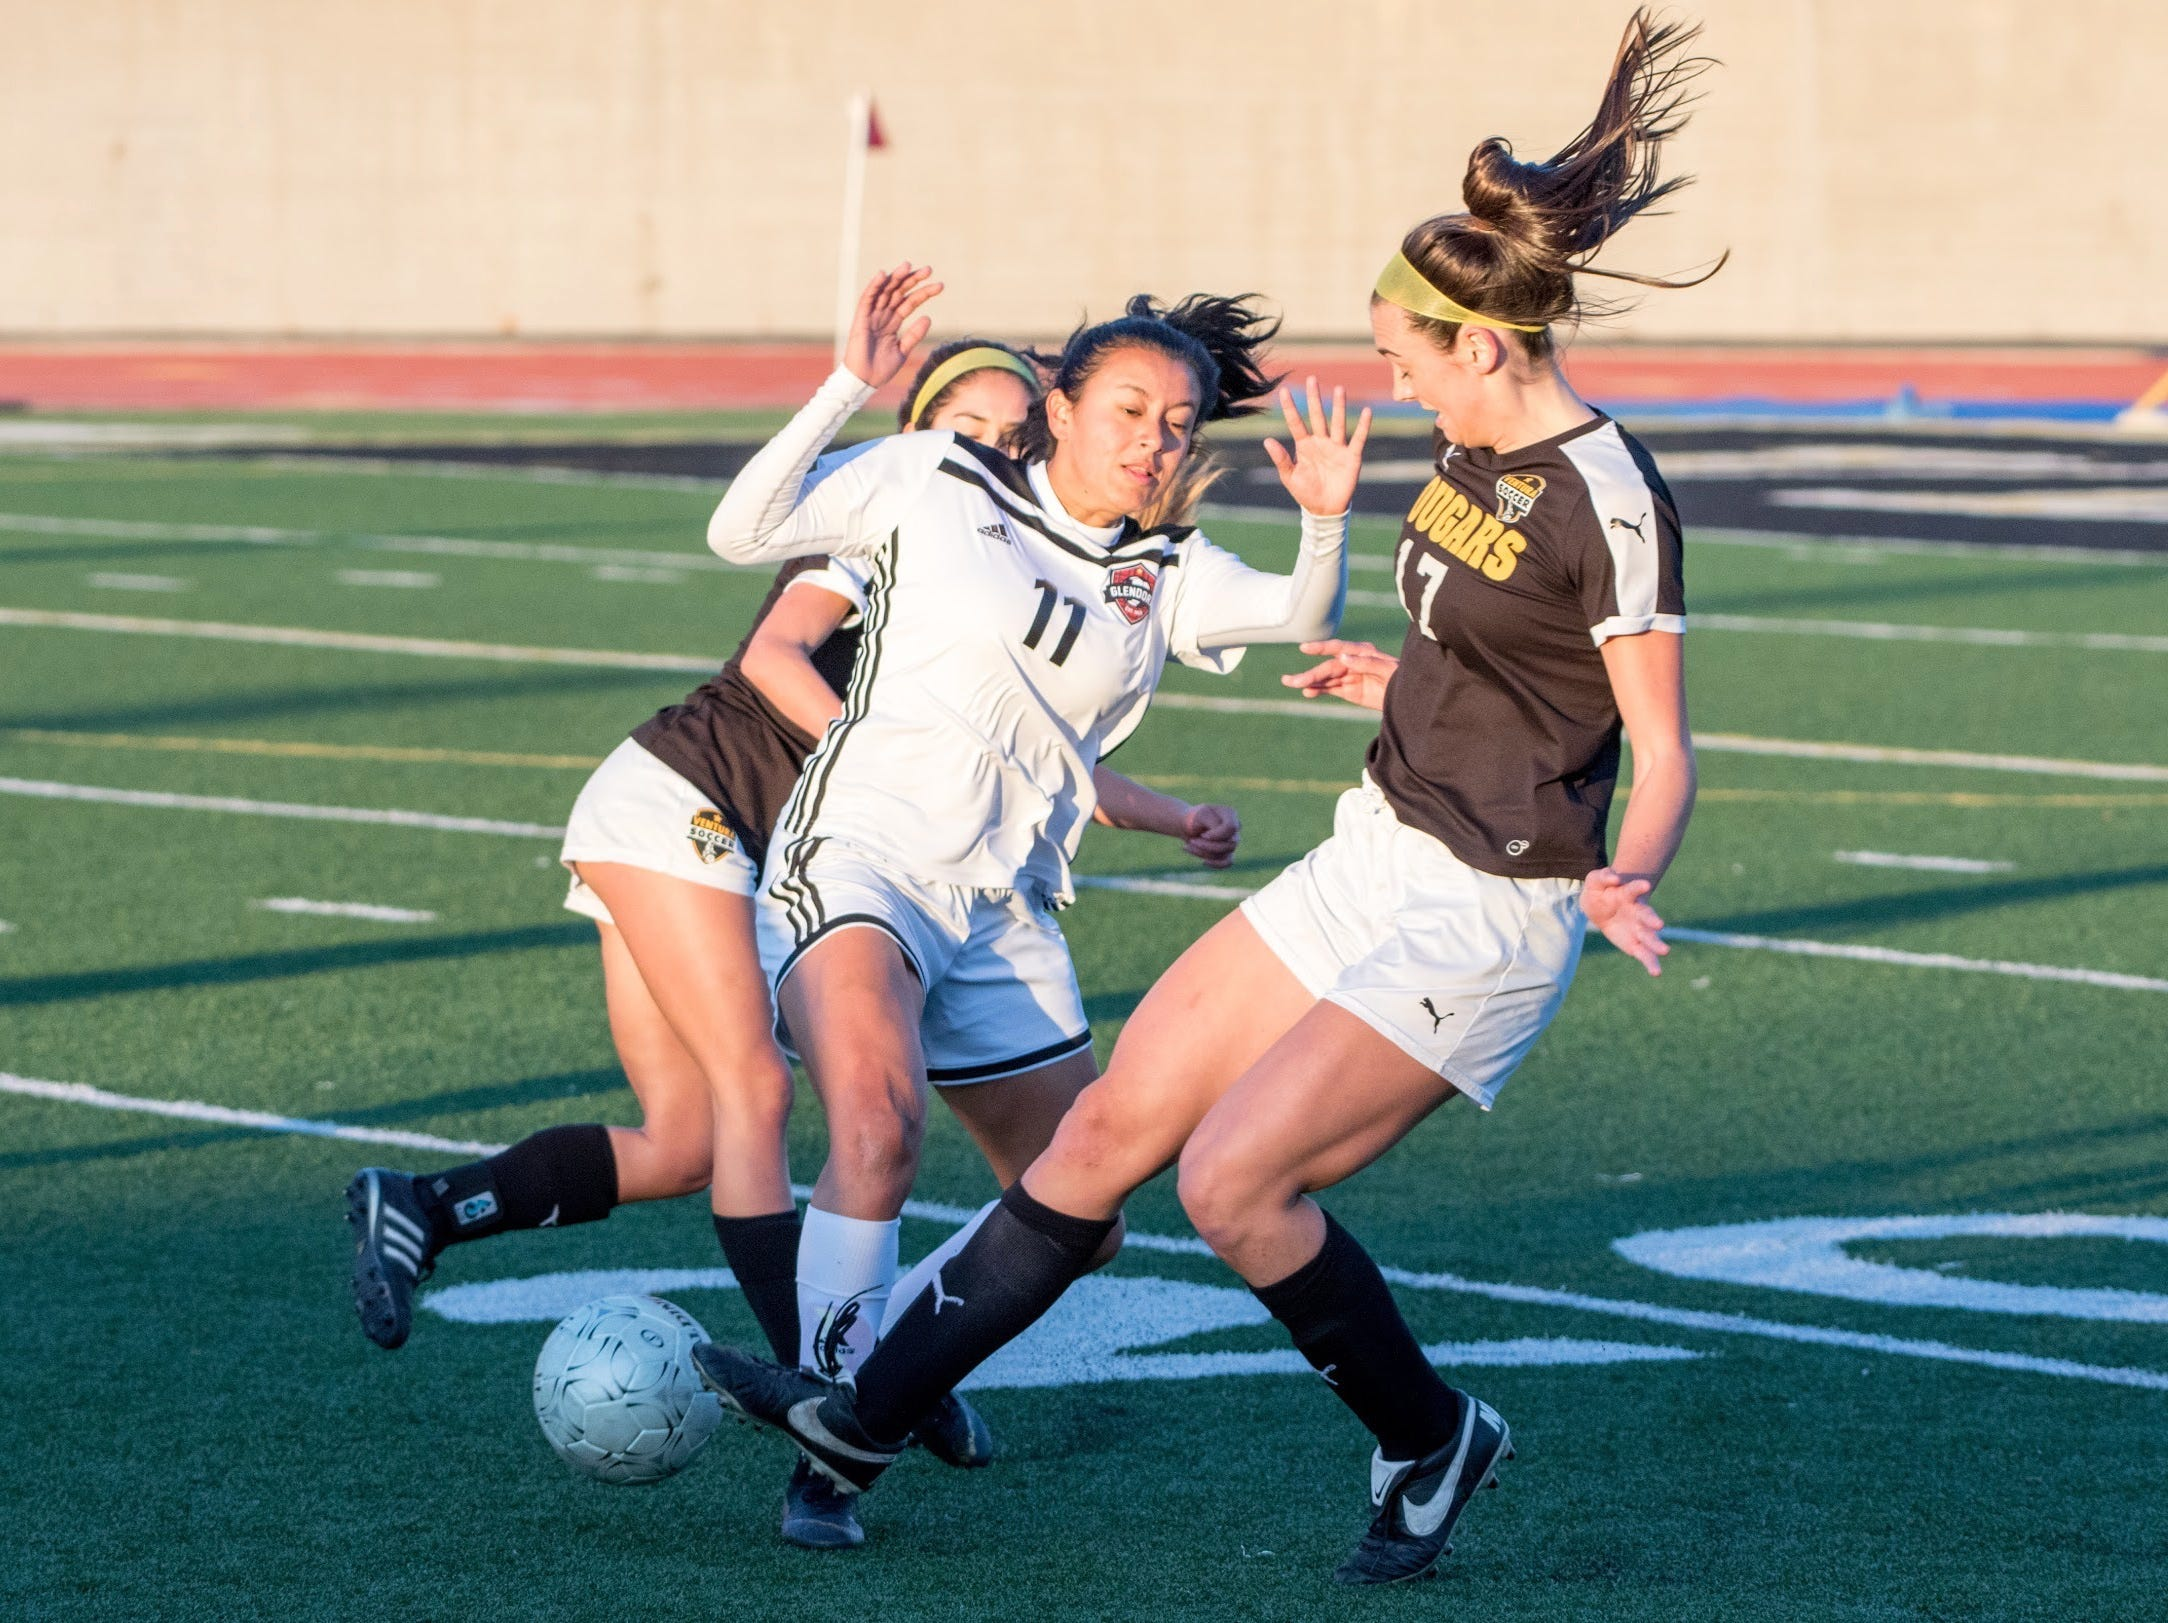 Ventura senior Peyton Erickson, right, battles with Glendora's Sierra Reich on Friday in the second round of the CIF-Southern Section Division 2 girls soccer playoffs at Larrabee Stadium. Ventura won, 4-1.